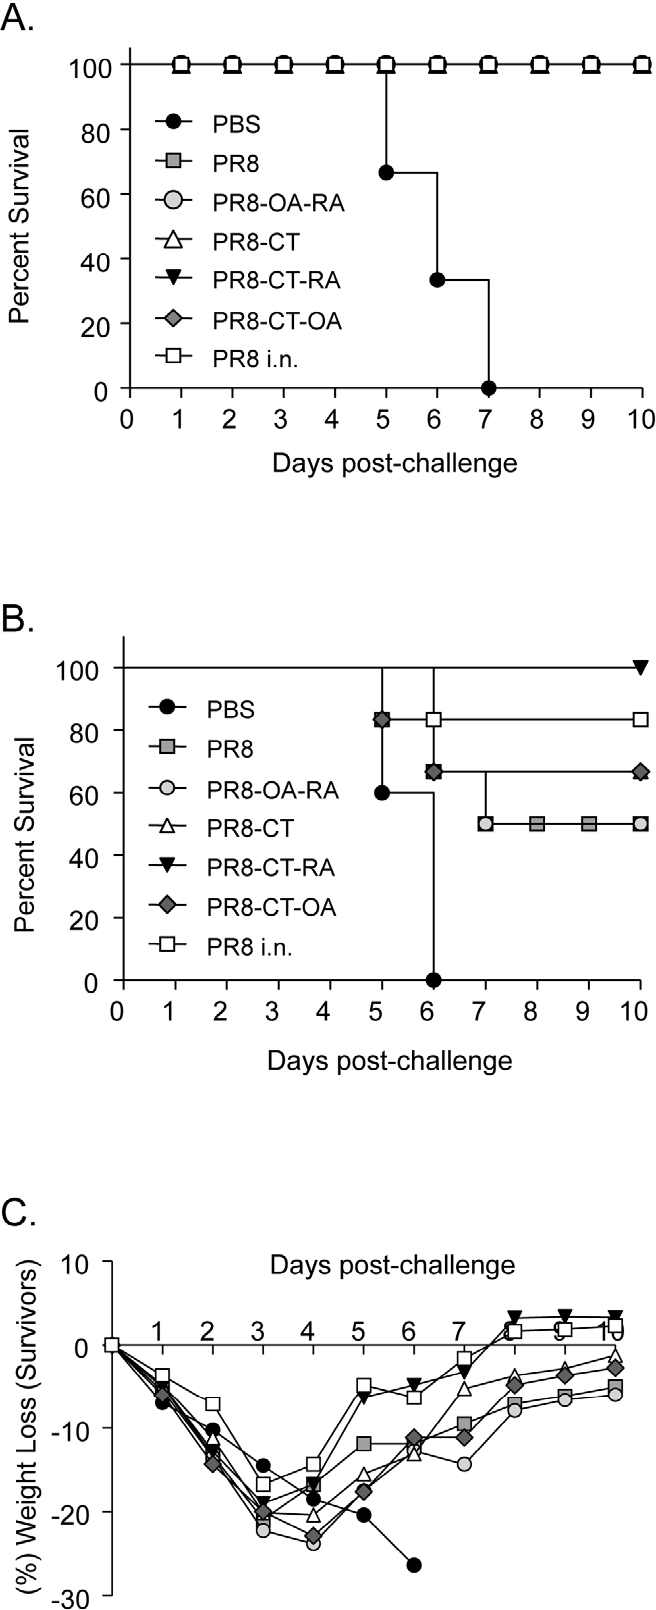 Figure 3. Protection of mice from lethal influenza virus challenge. Survival rates of immunized mice were monitored for 10 days after i.n. infection with mouse adapted PR8 virus. (A) Kaplan-Meier curve showing the percent of mice that survived a 5x LD50 PR8 virus challenge. (B) Percent of mice that survived a 20x LD50 PR8 virus challenge. (C) Percentage of body weight after i.n. challenge with 20x LD50 PR8 virus. PBS, PR8, PR8-OA-RA, PR8-CT, PR8-CT-OA, and PR8-CTRA groups are as described in the legend of Table 1. Data represent the average of six mice per group for each challenge study. doi:10.1371/journal.pone.0010897.g003